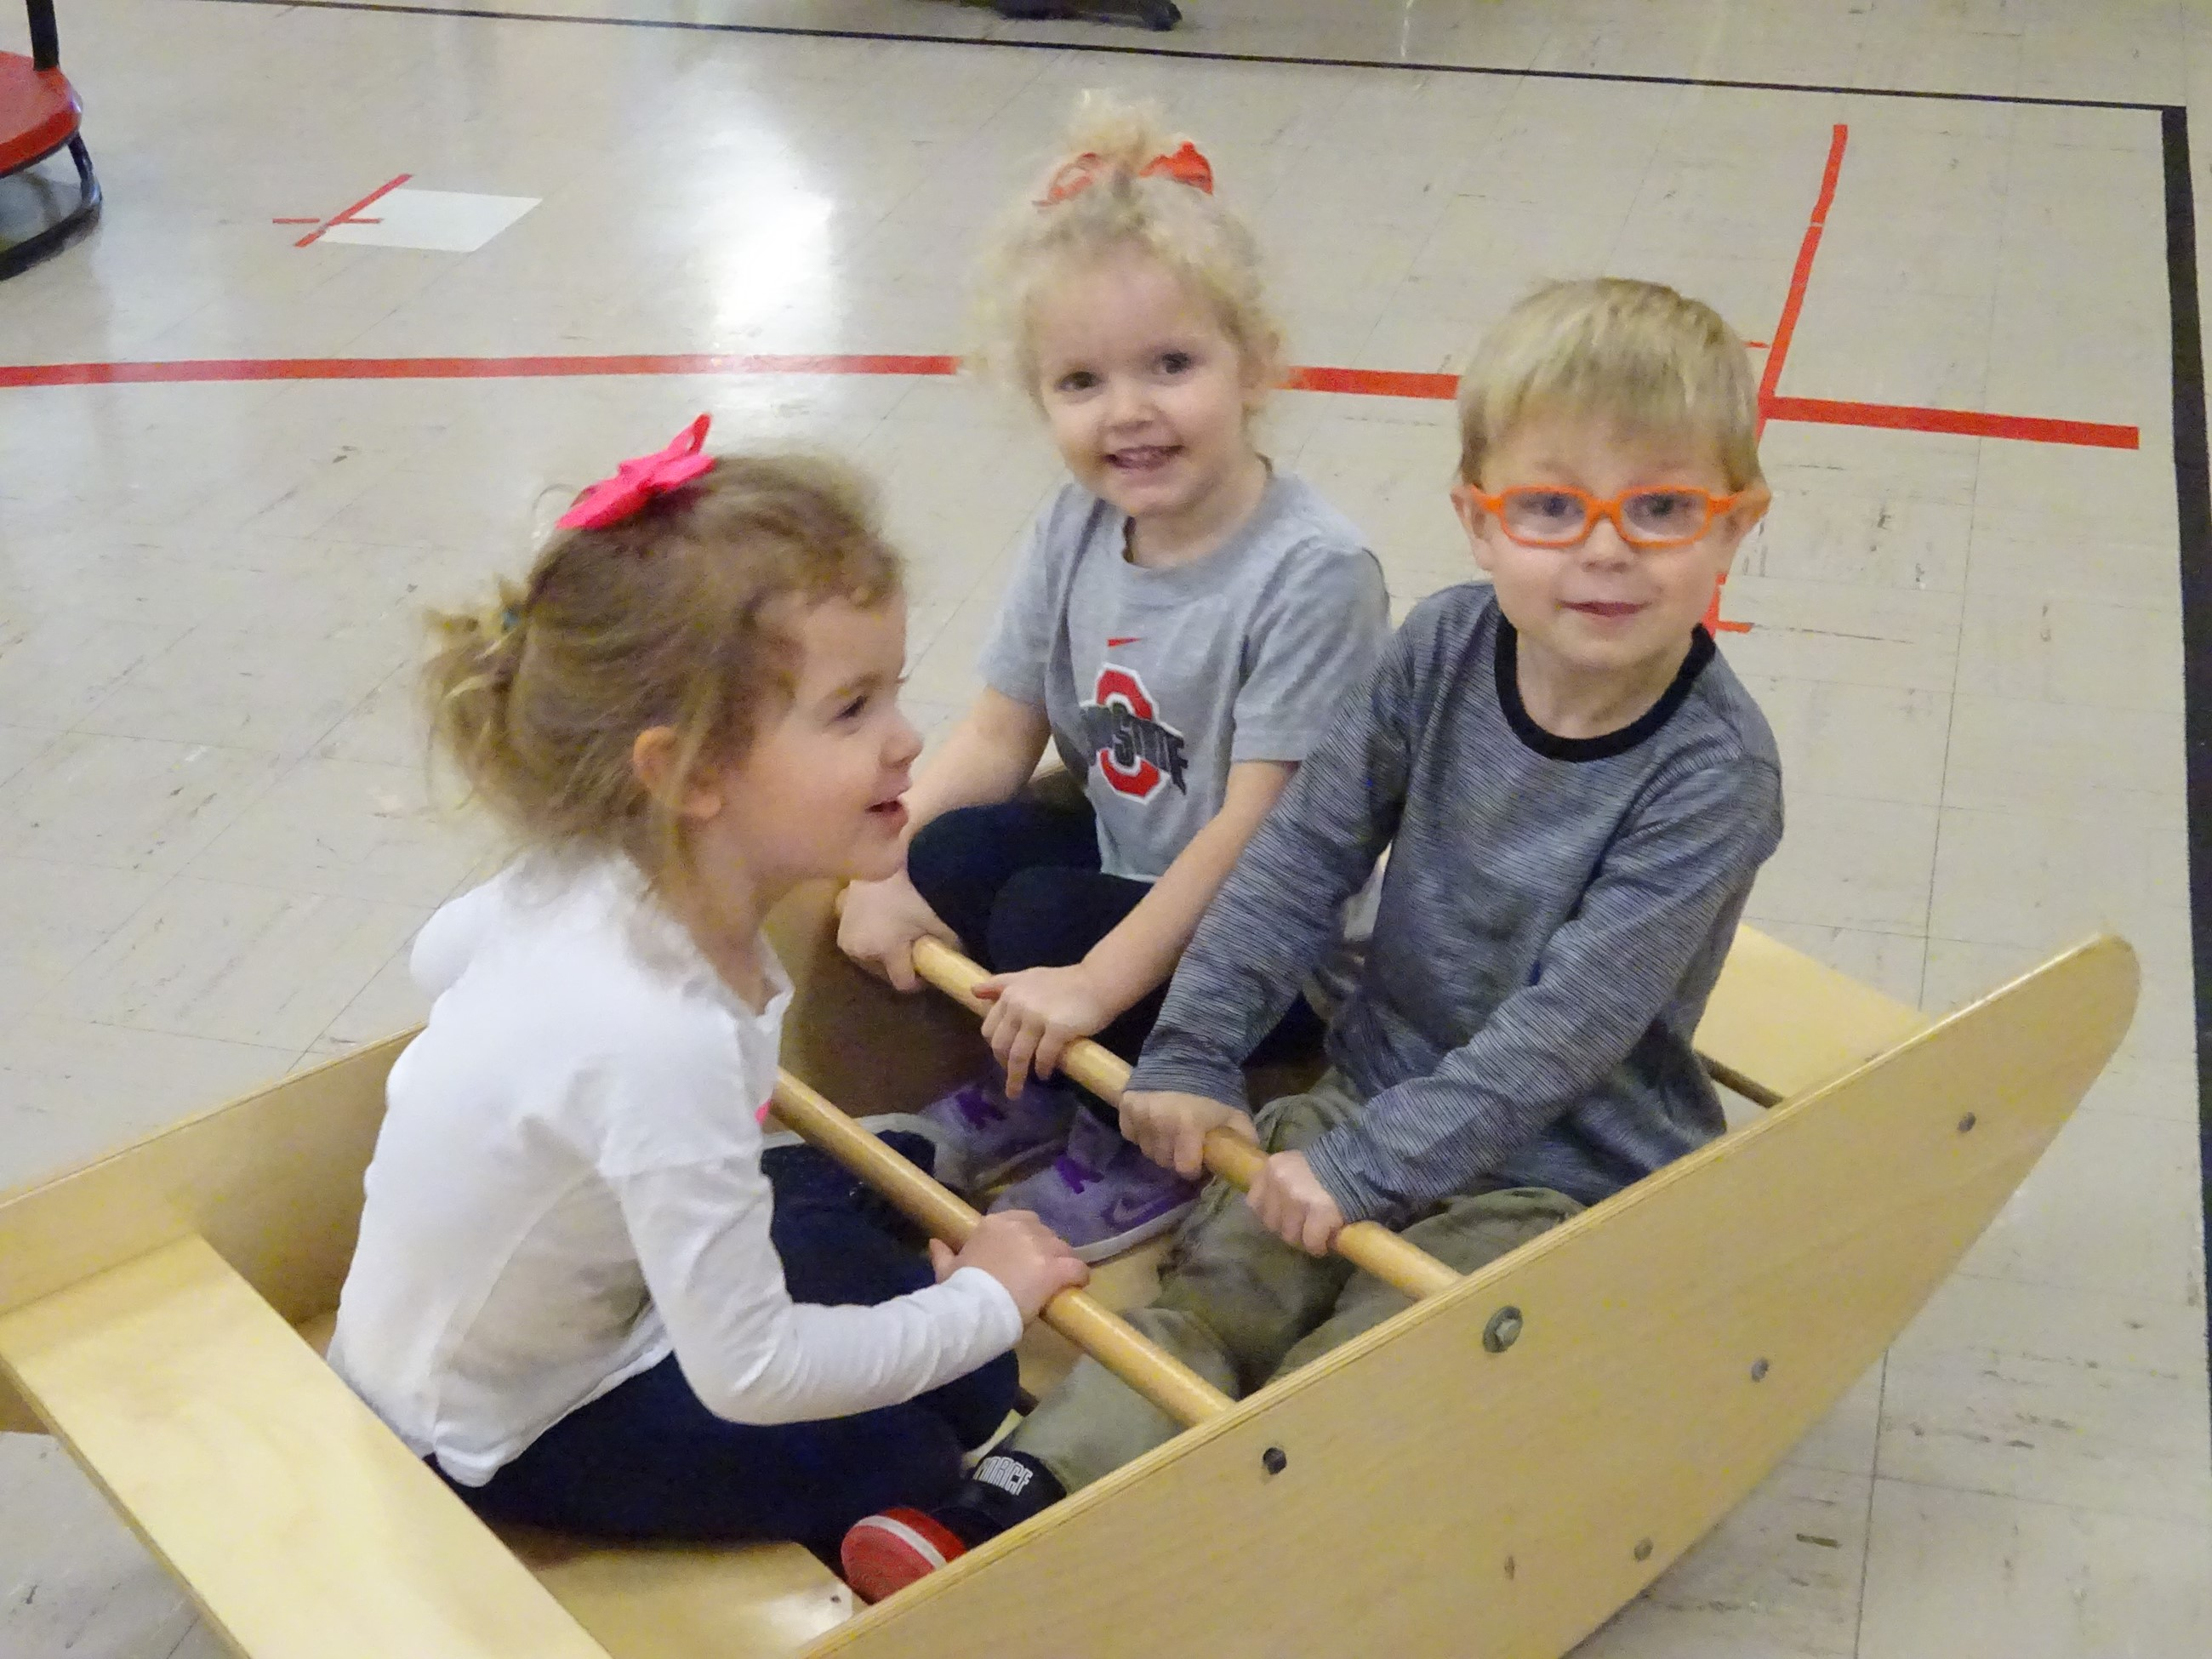 Preschool students enjoy a play break during their school day.